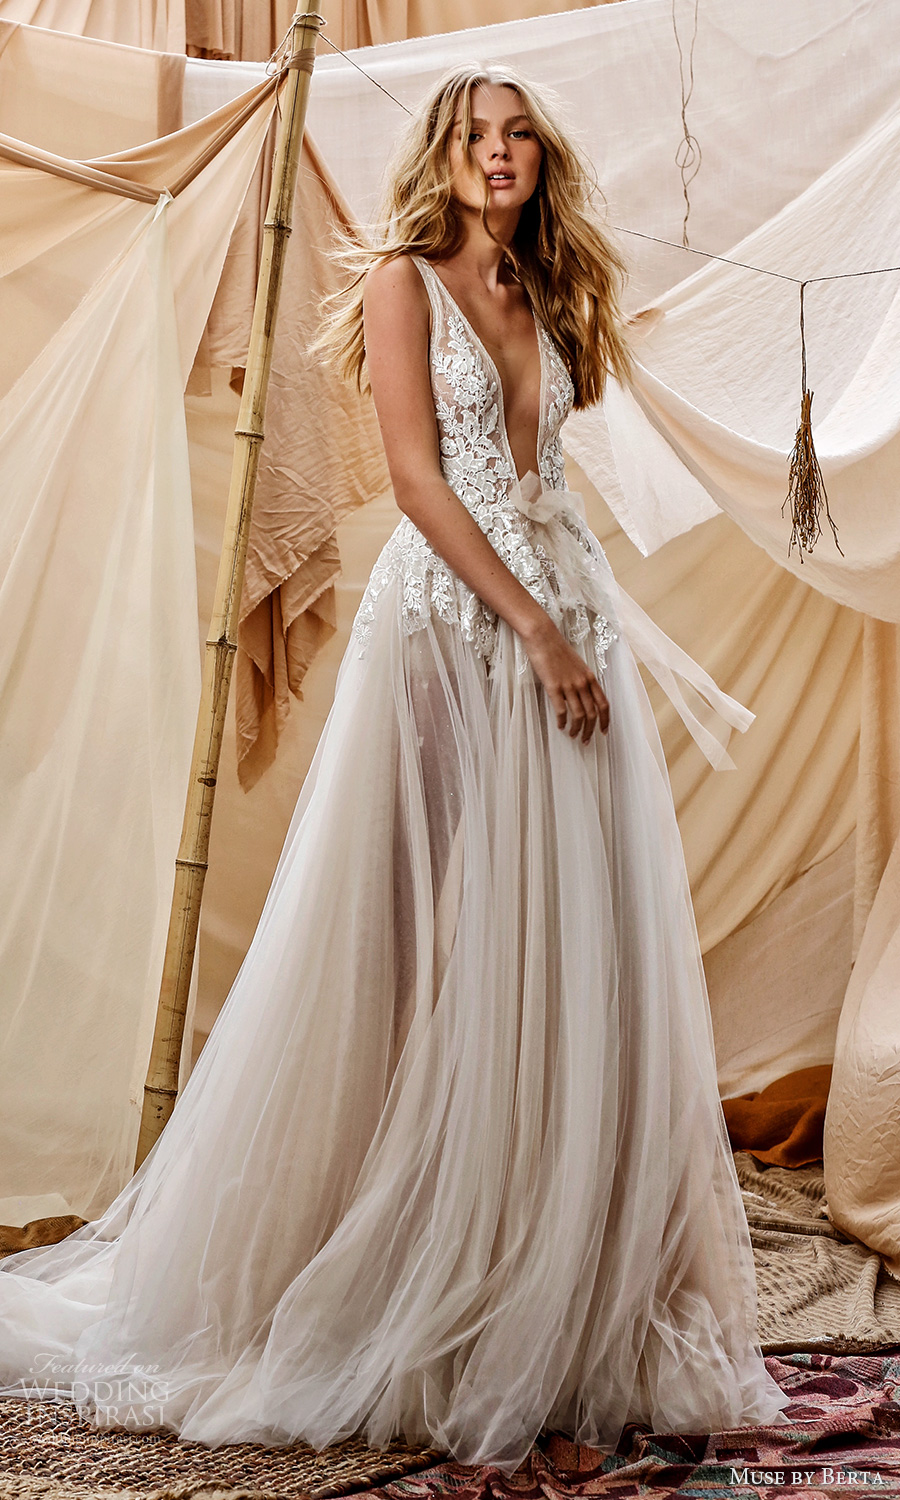 muse by berta spring 2021 bridal sleeveless straps plunging v neckling embellished lace bodice a line ball gown wedding dress chapel train (6) mv